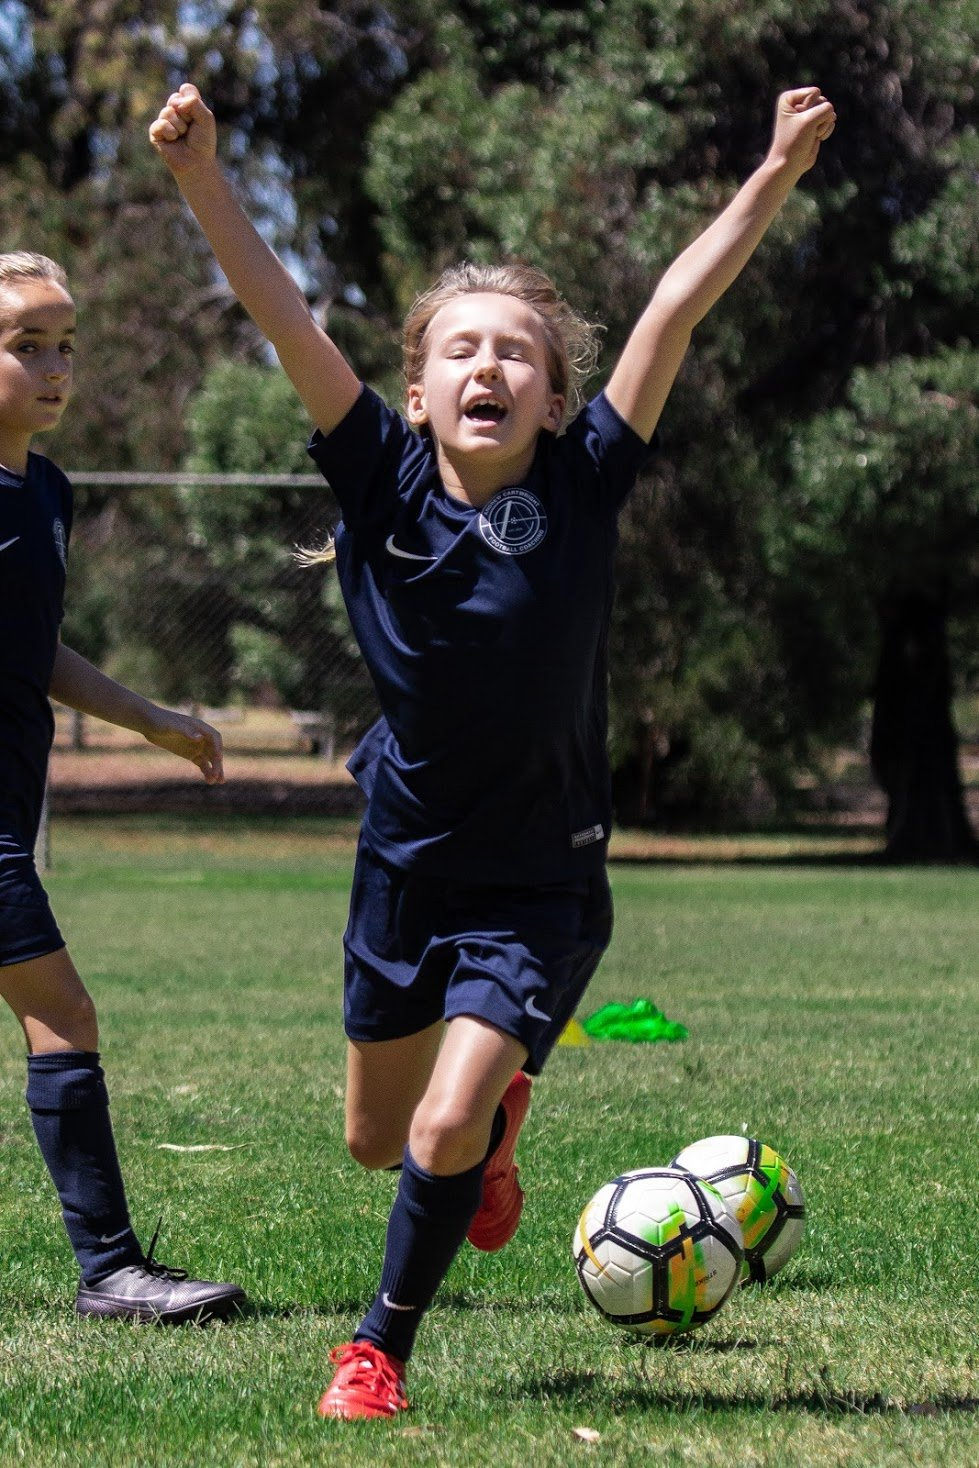 girl footballer running with her arms raised in the air